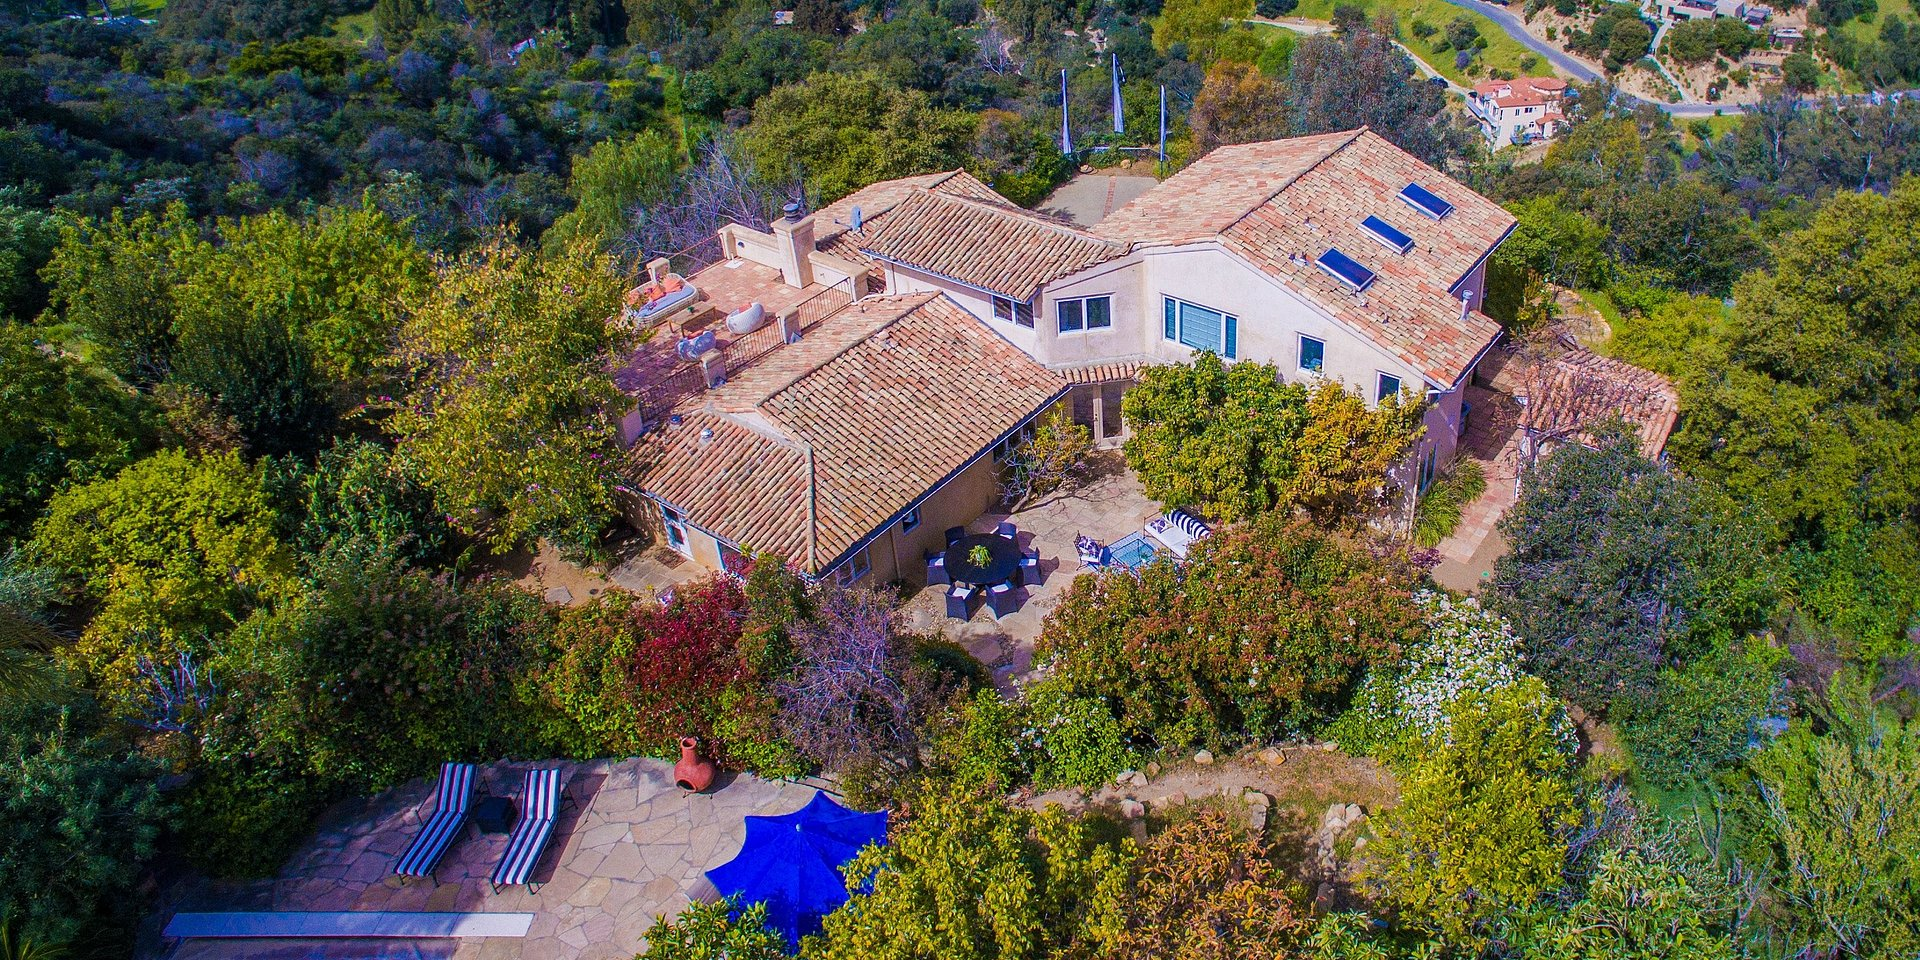 Coldwell Banker Residential Brokerage Lists Approximately 38-Acre Topanga Property for $5.5 Million